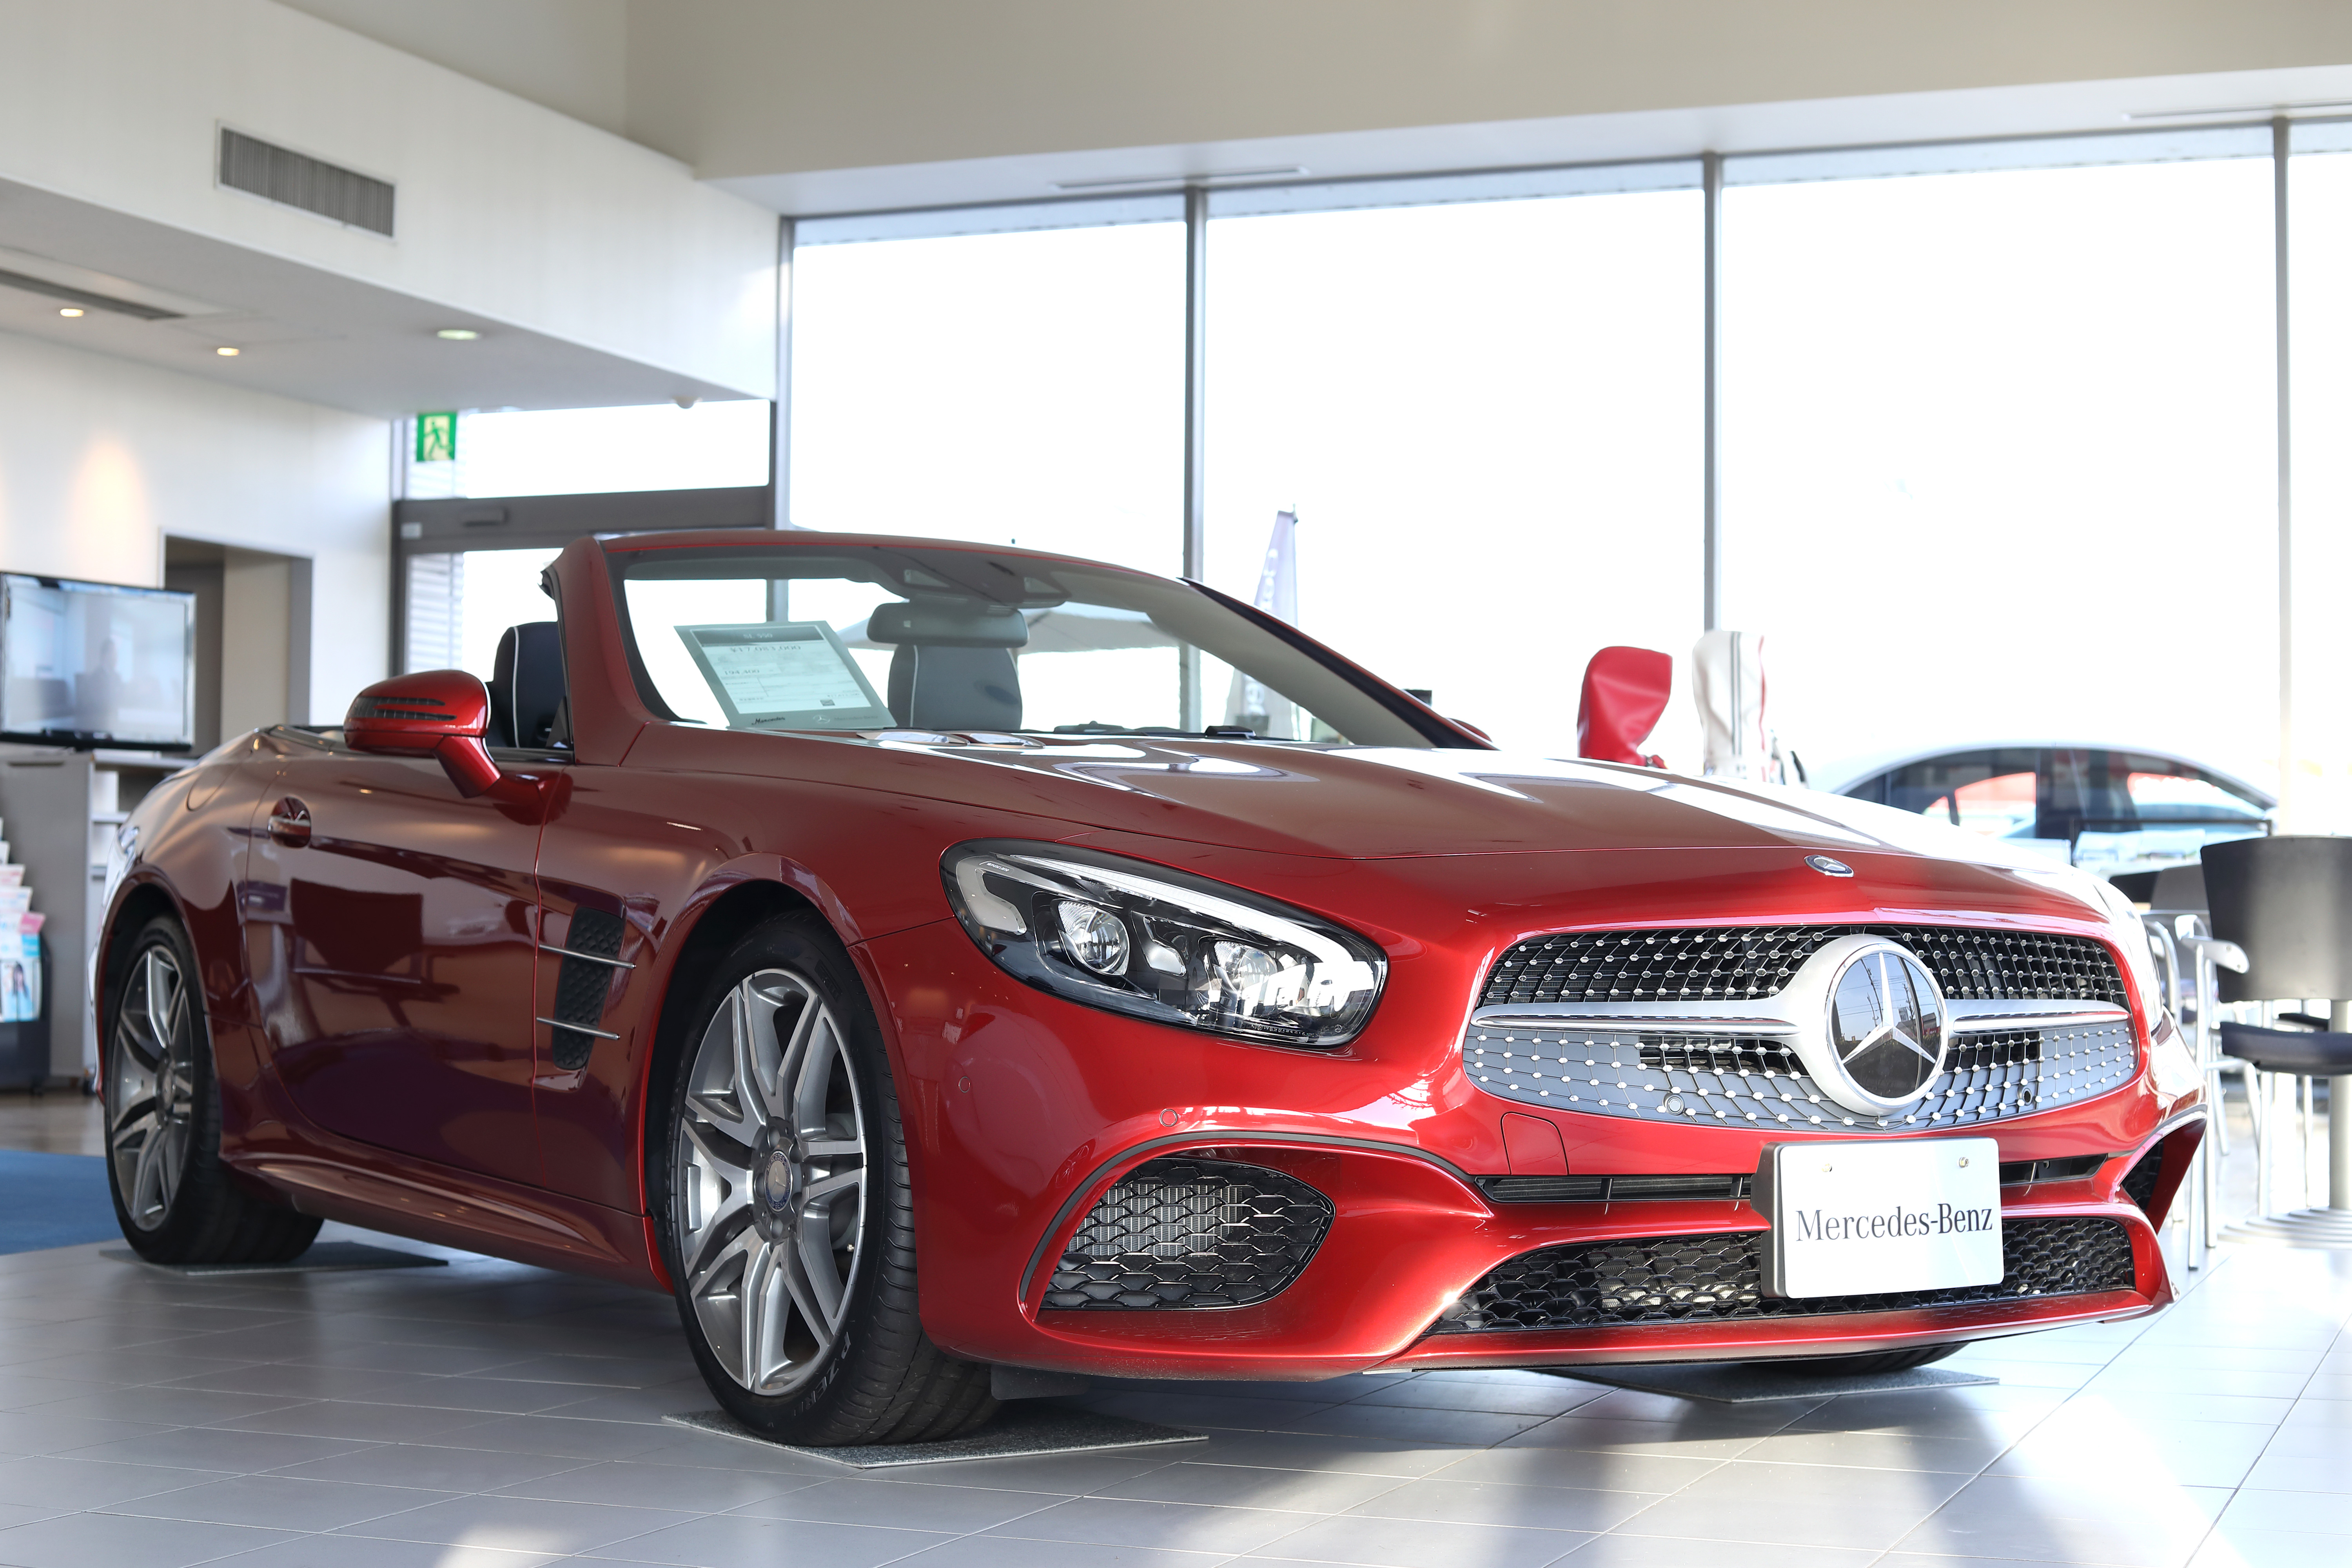 File Mercedes Benz Sl550 2016 By An Specification Roof Open Jpg